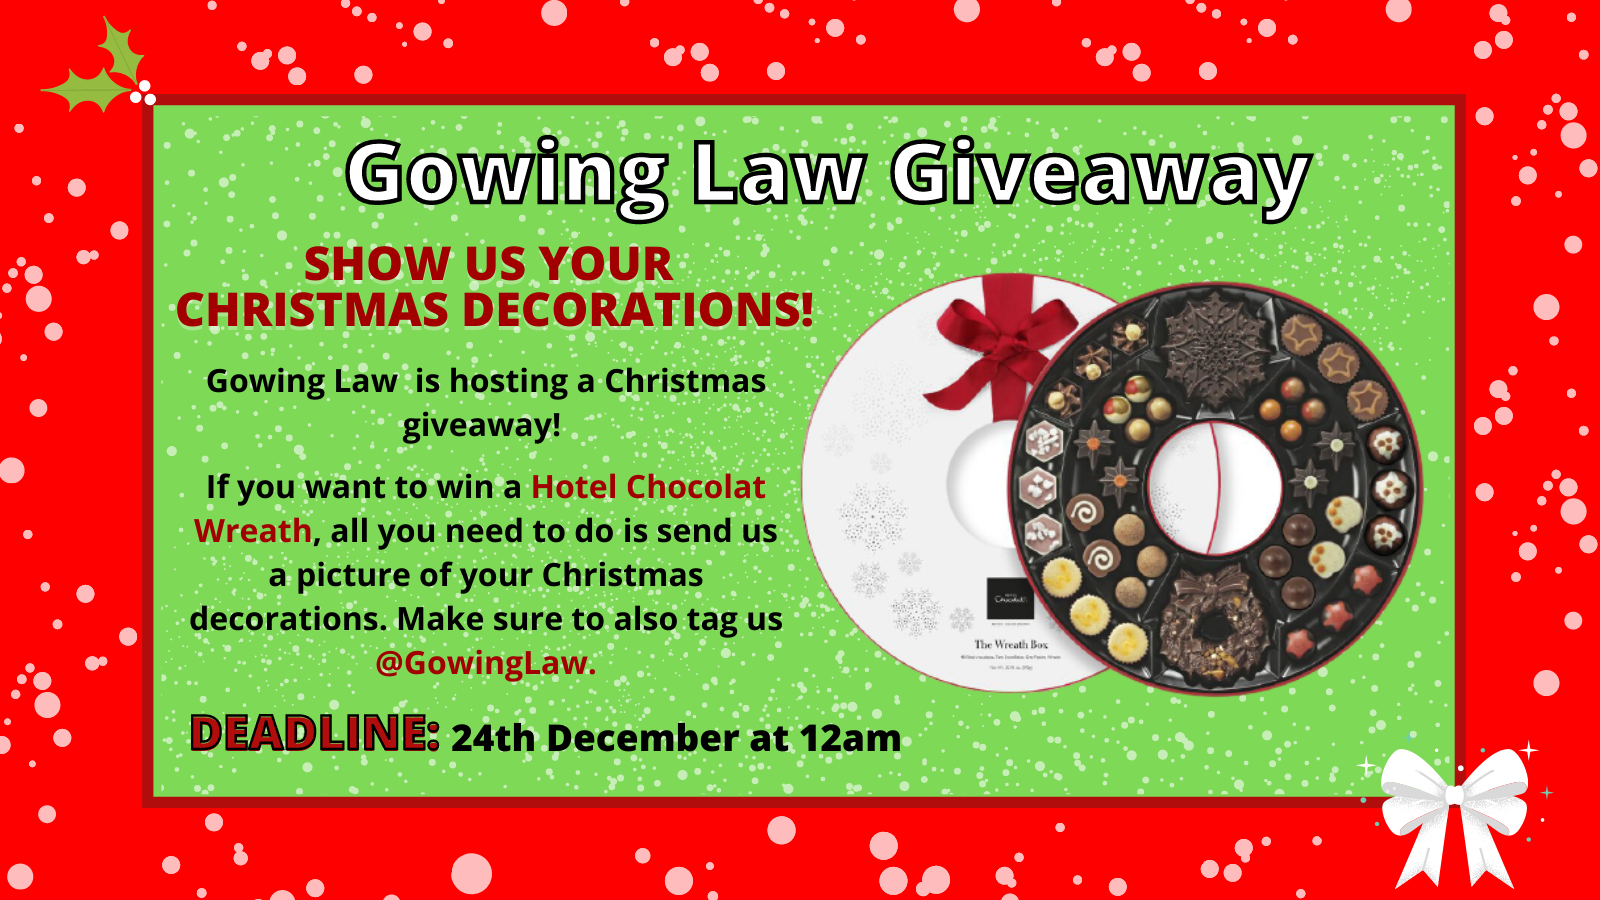 Christmas Holidays decorations giveaway advertisement